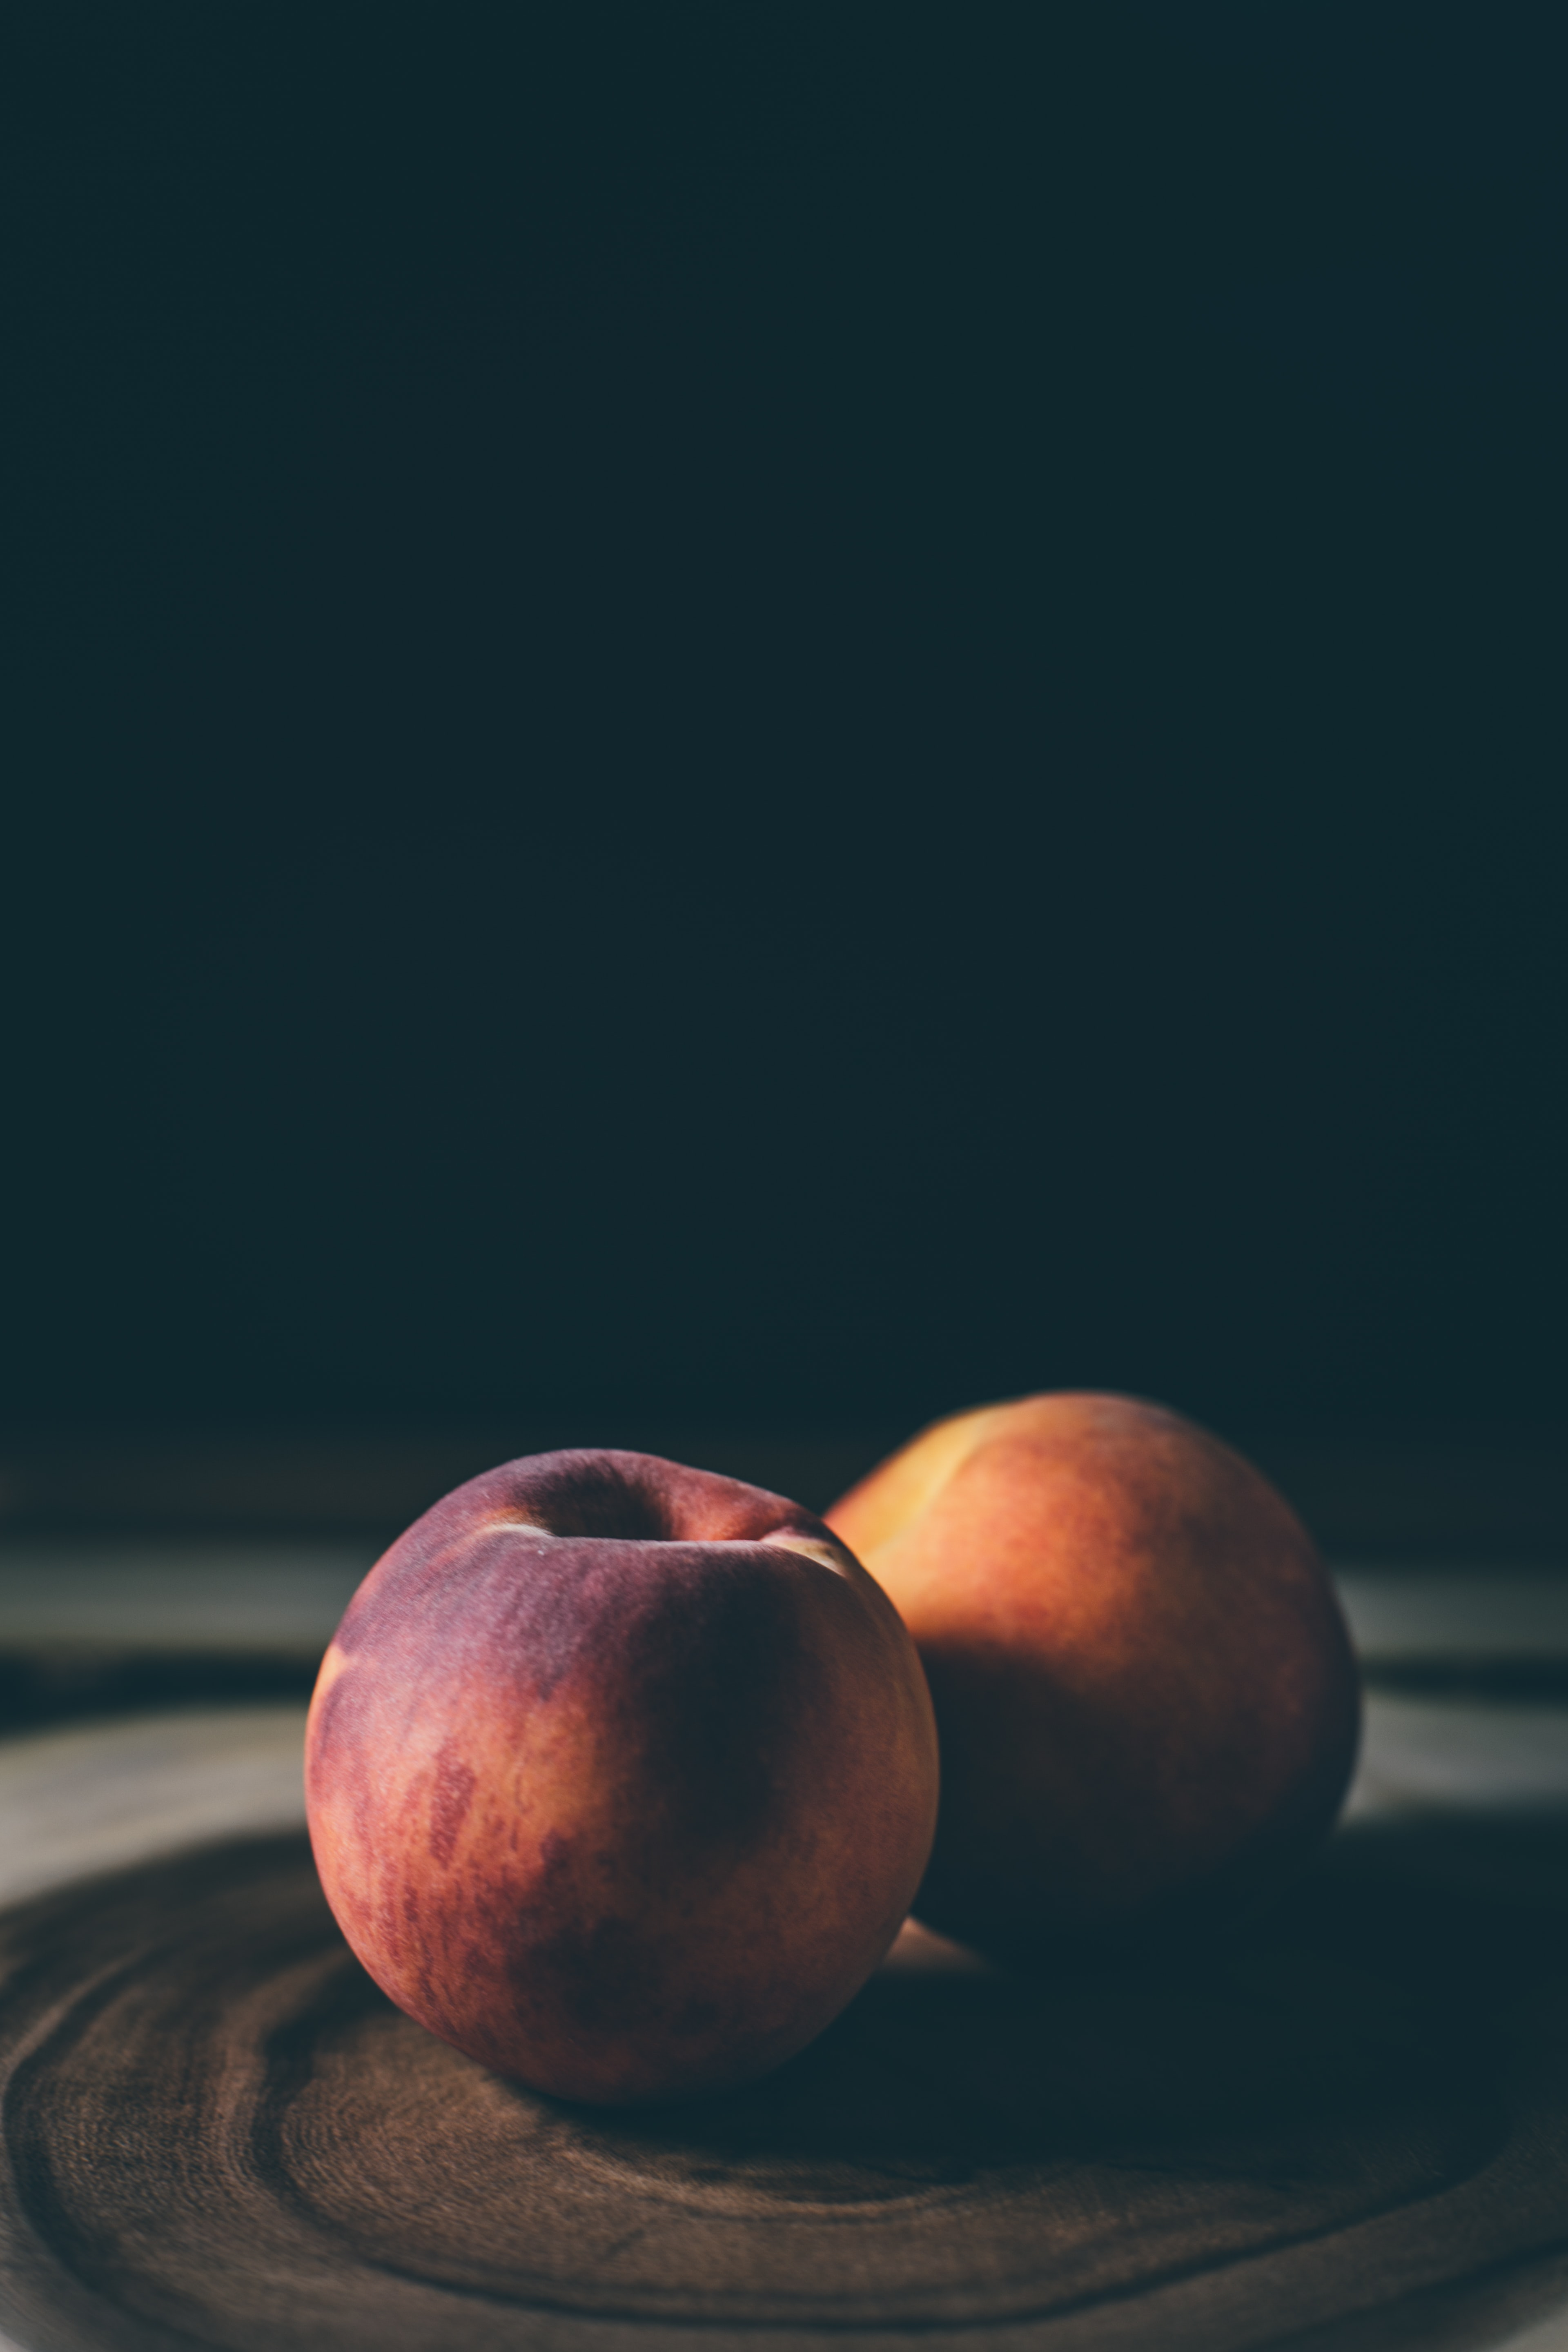 two apples on table